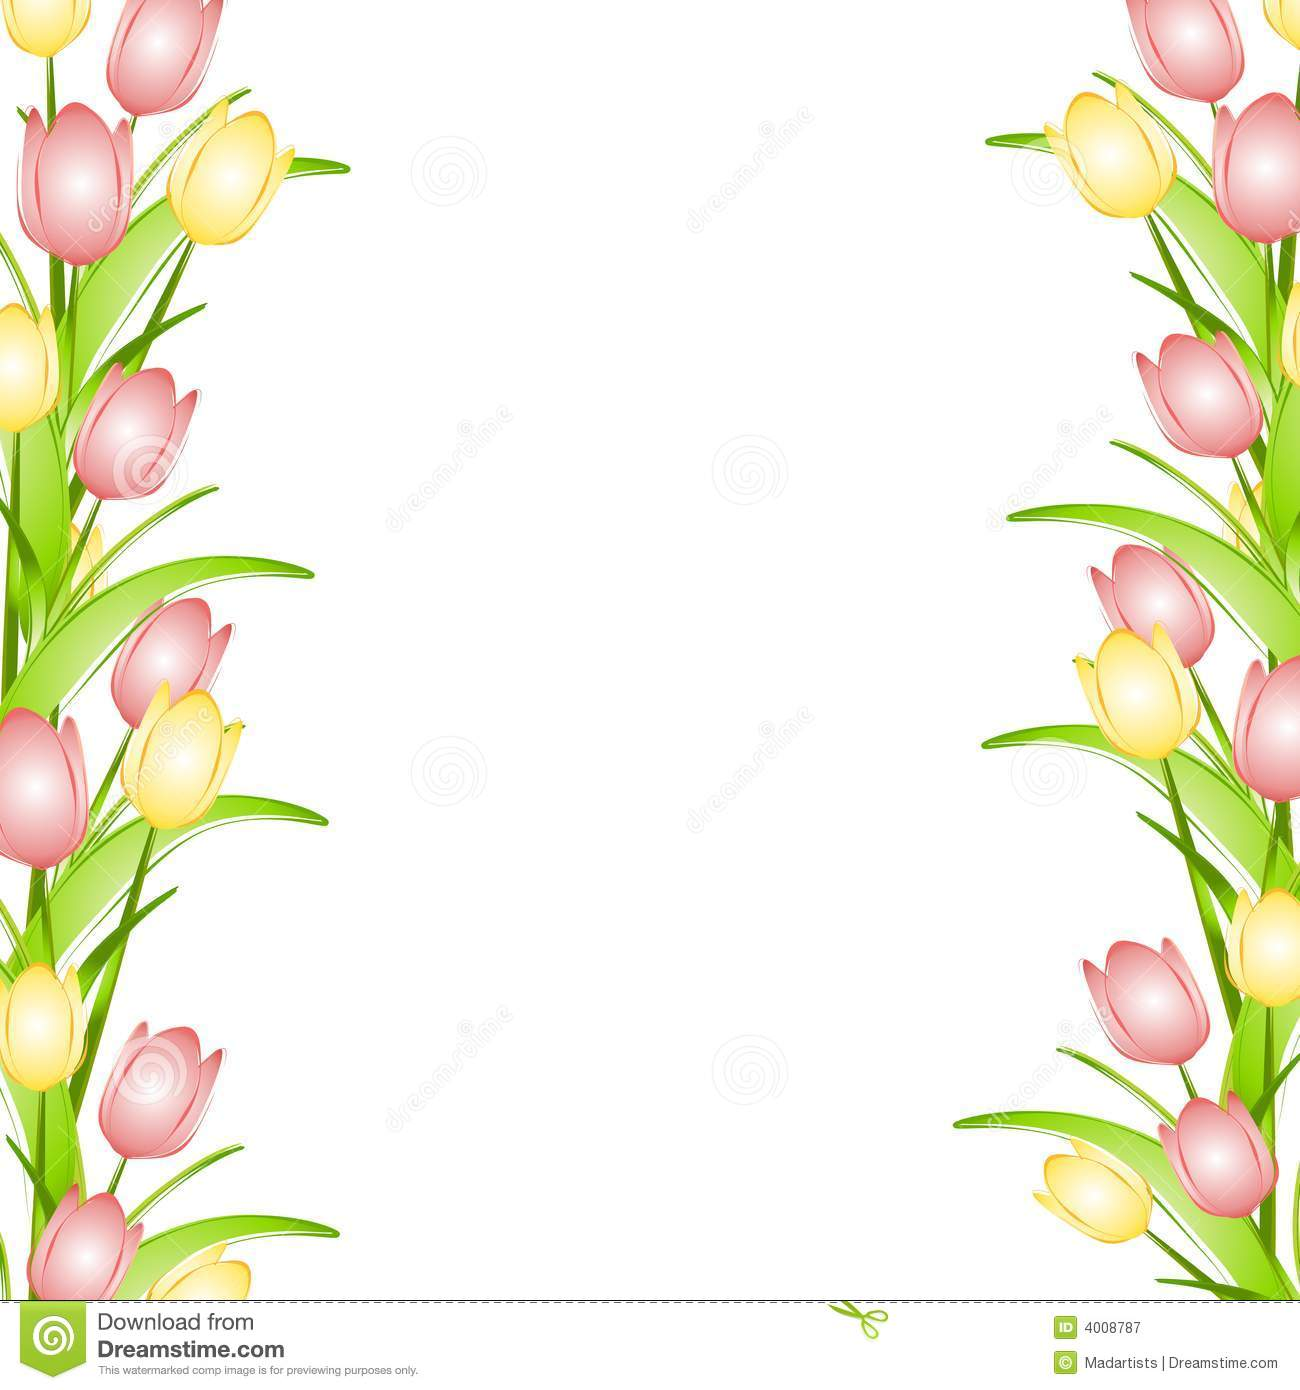 Easter Flowers Borders Clip Art.